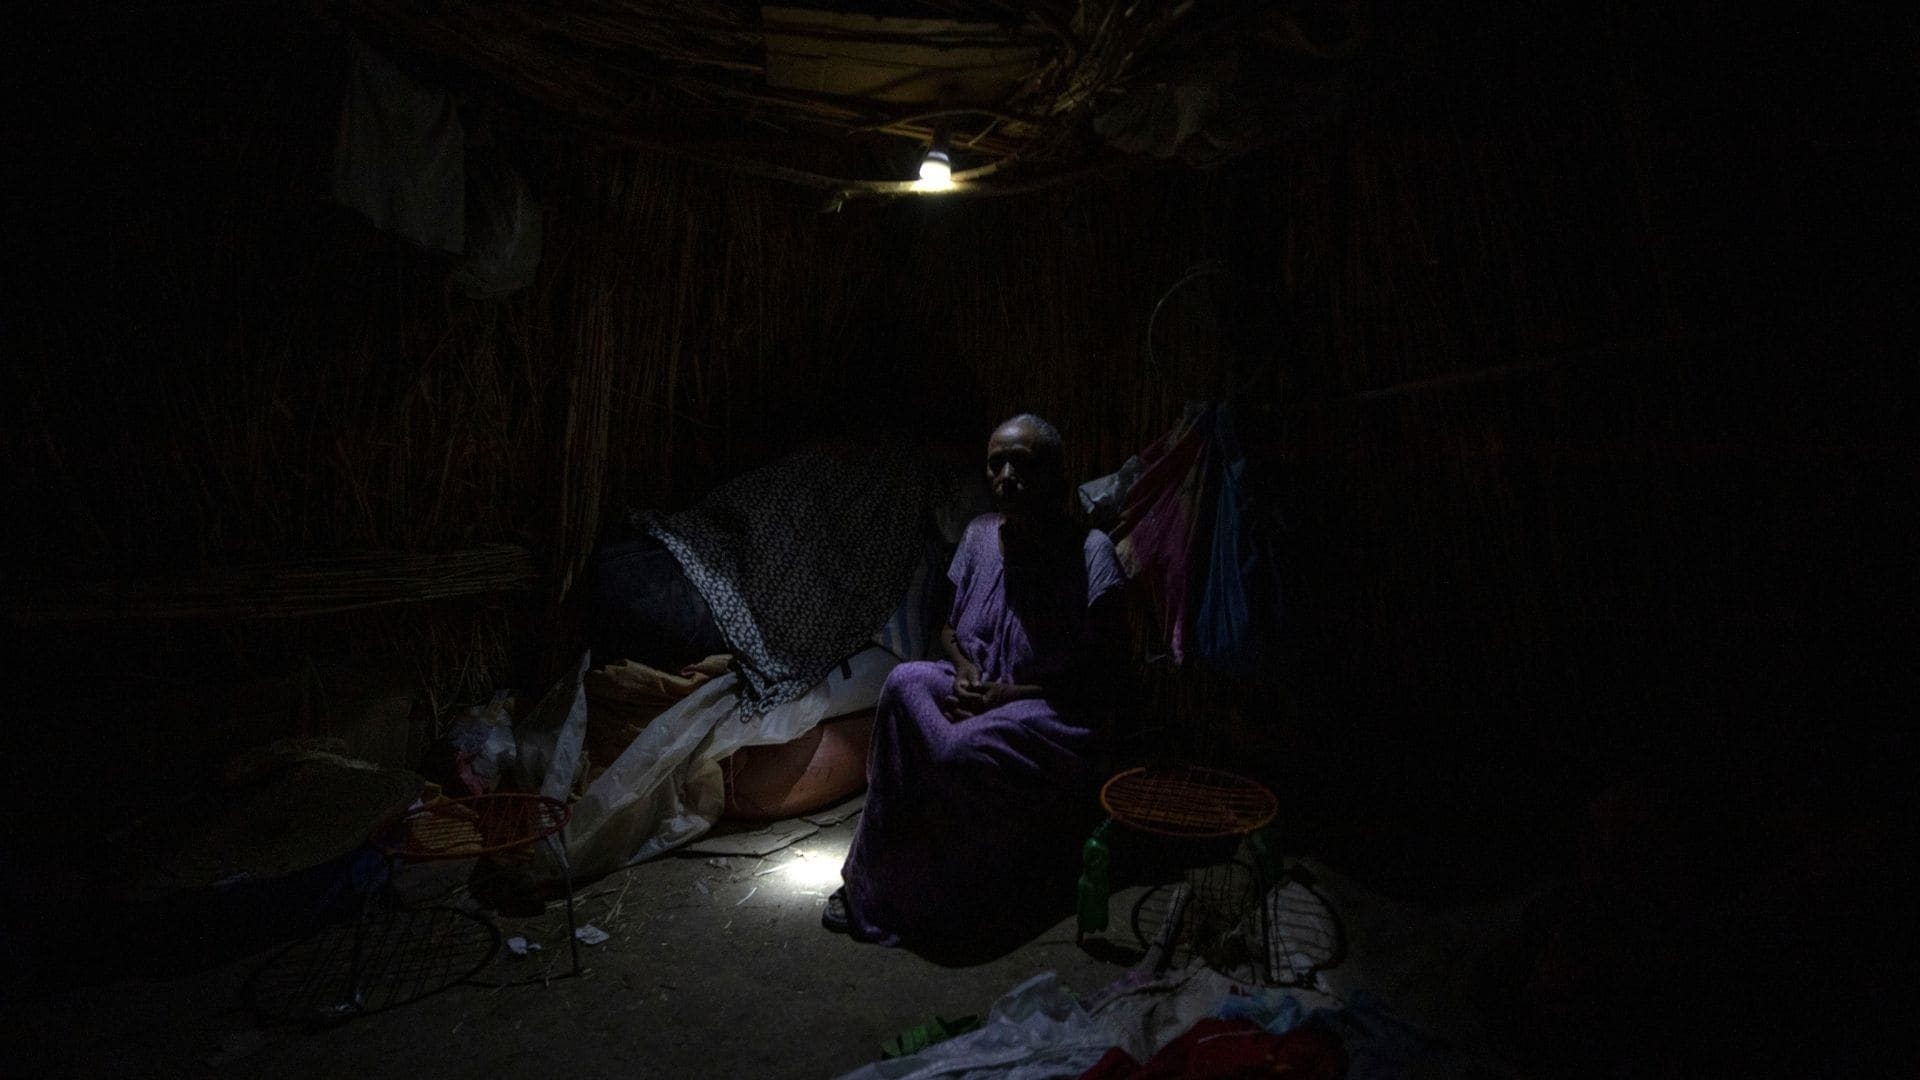 Tigrayan refugees in Sudan bear scars, wounds of 'ethnic cleansing' at the hands of Ethiopian govt